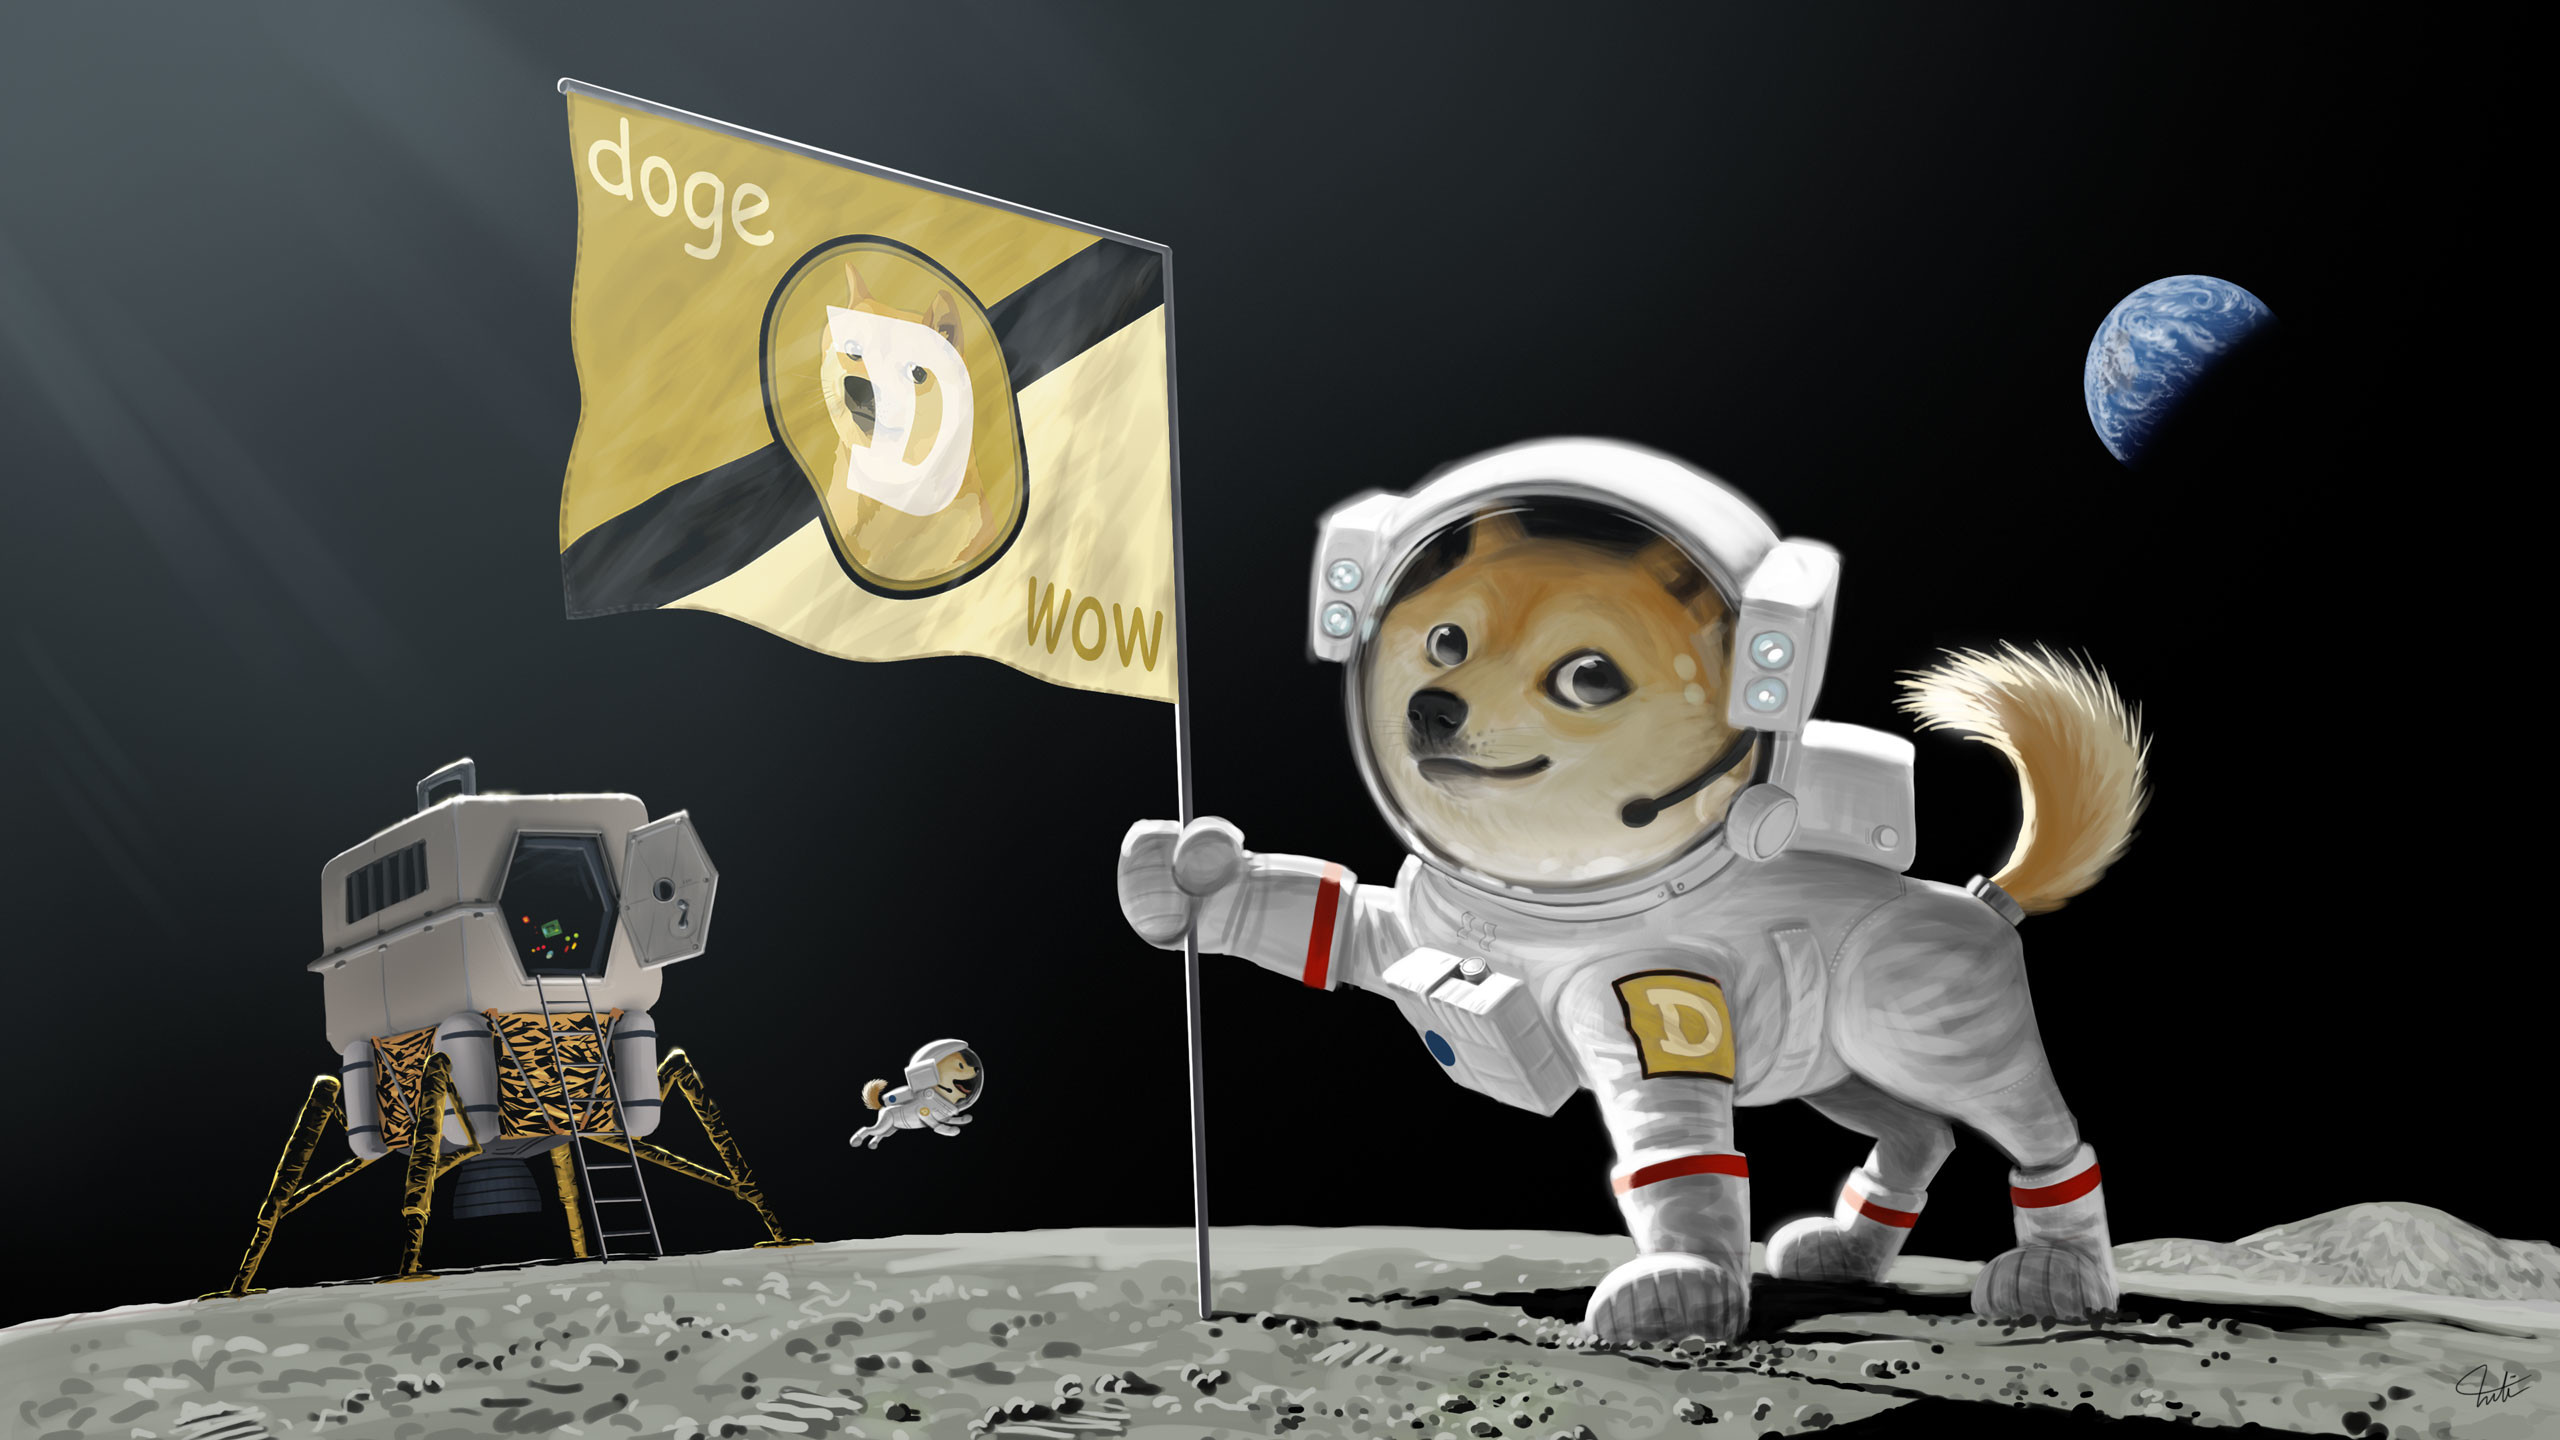 Res: 2560x1440, doge dogecoin memes moon space